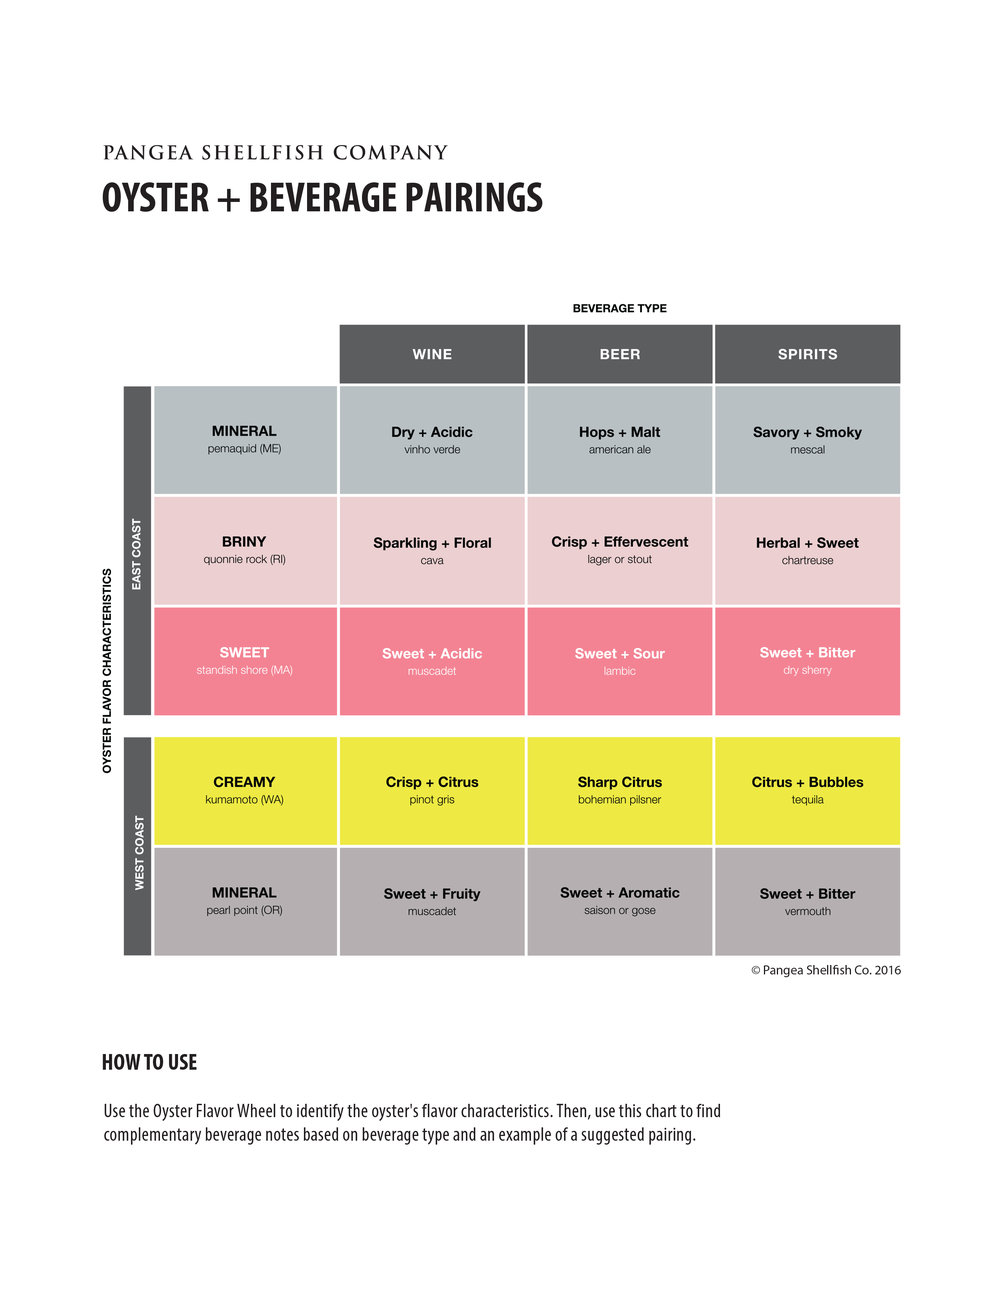 Oyster + Beverage Pairing Sheet (Final).jpg